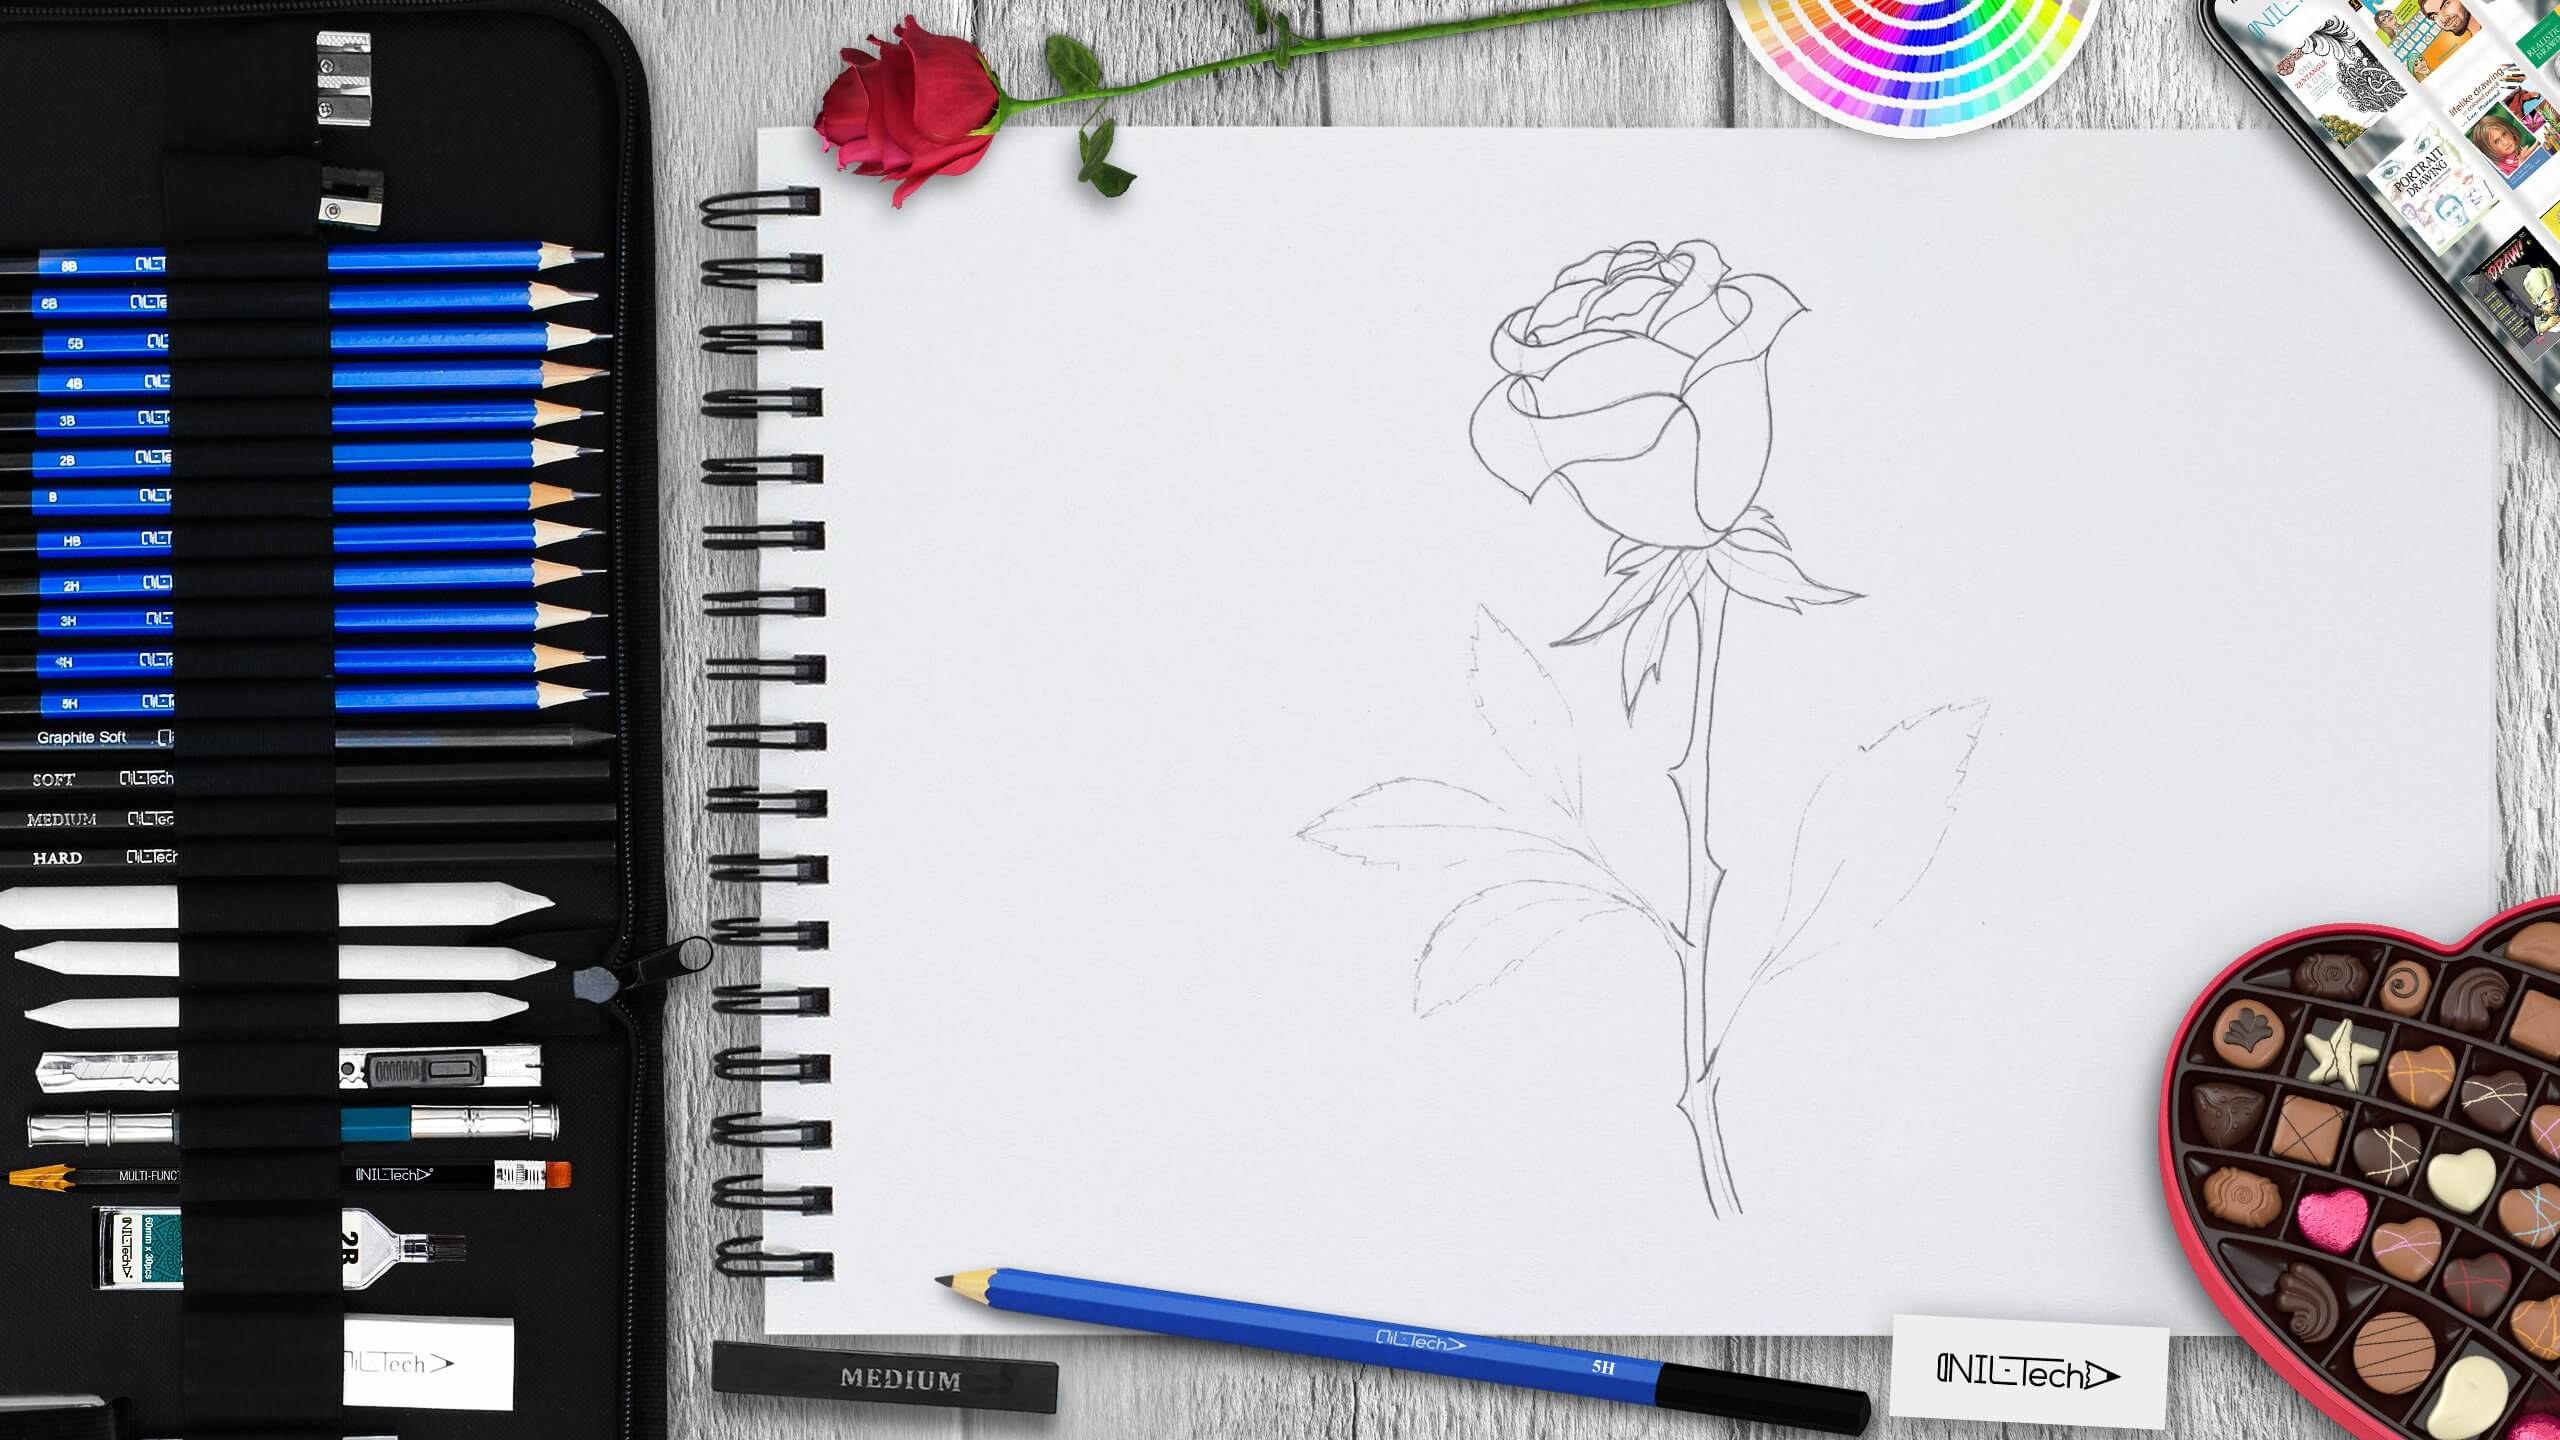 learn how to draw a rose step by step